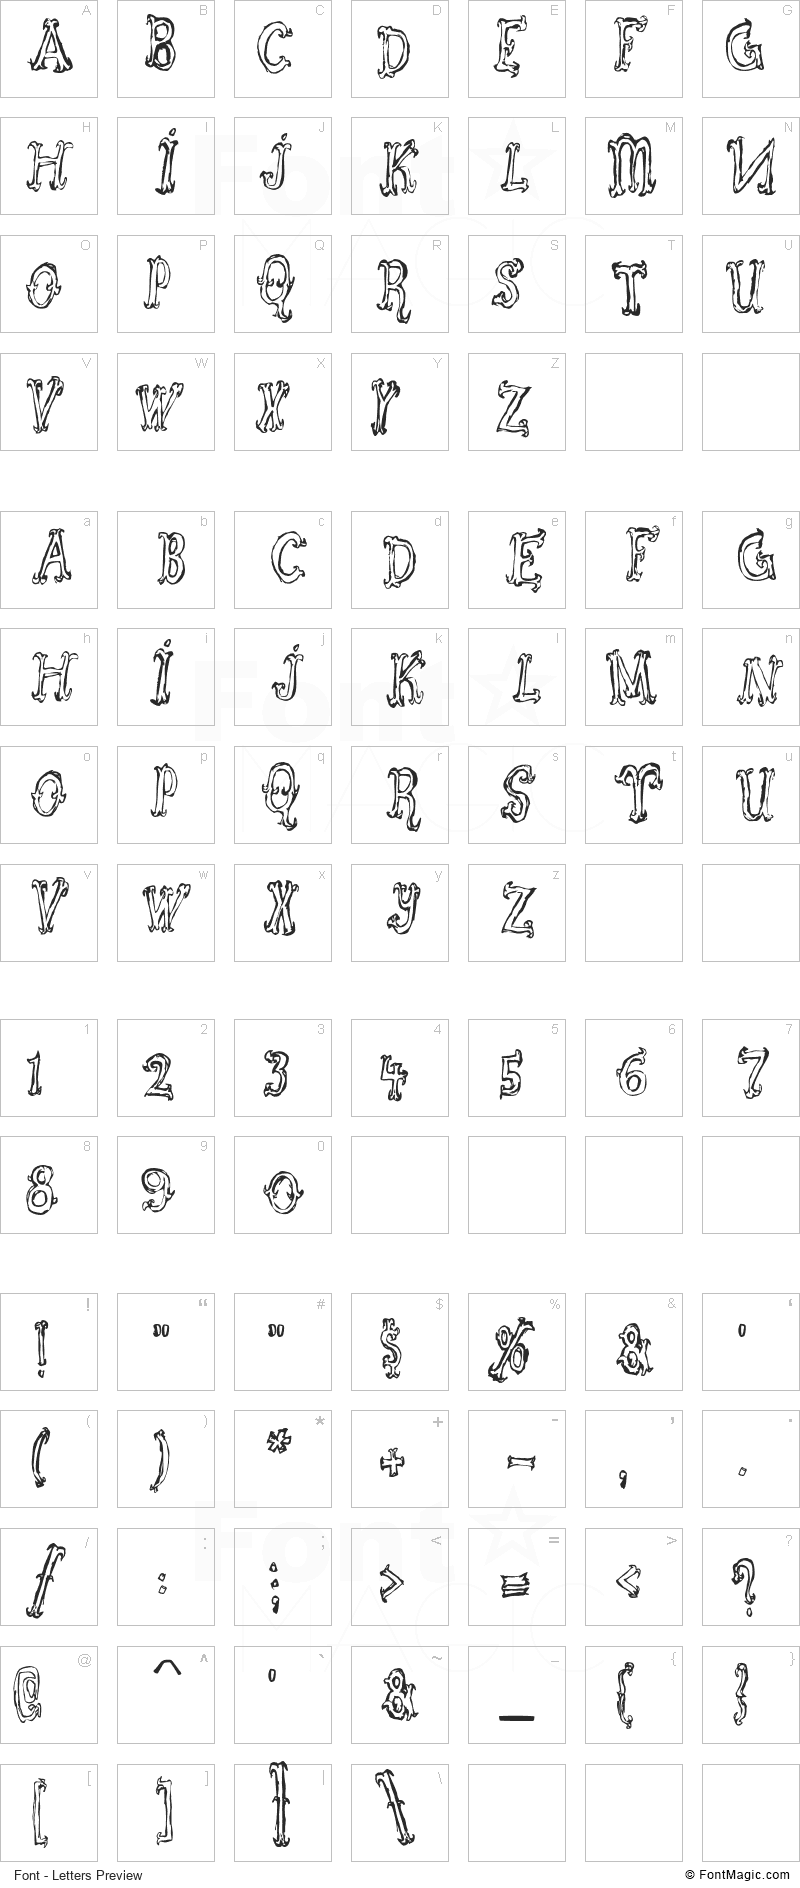 Szorakatenusz Font - All Latters Preview Chart